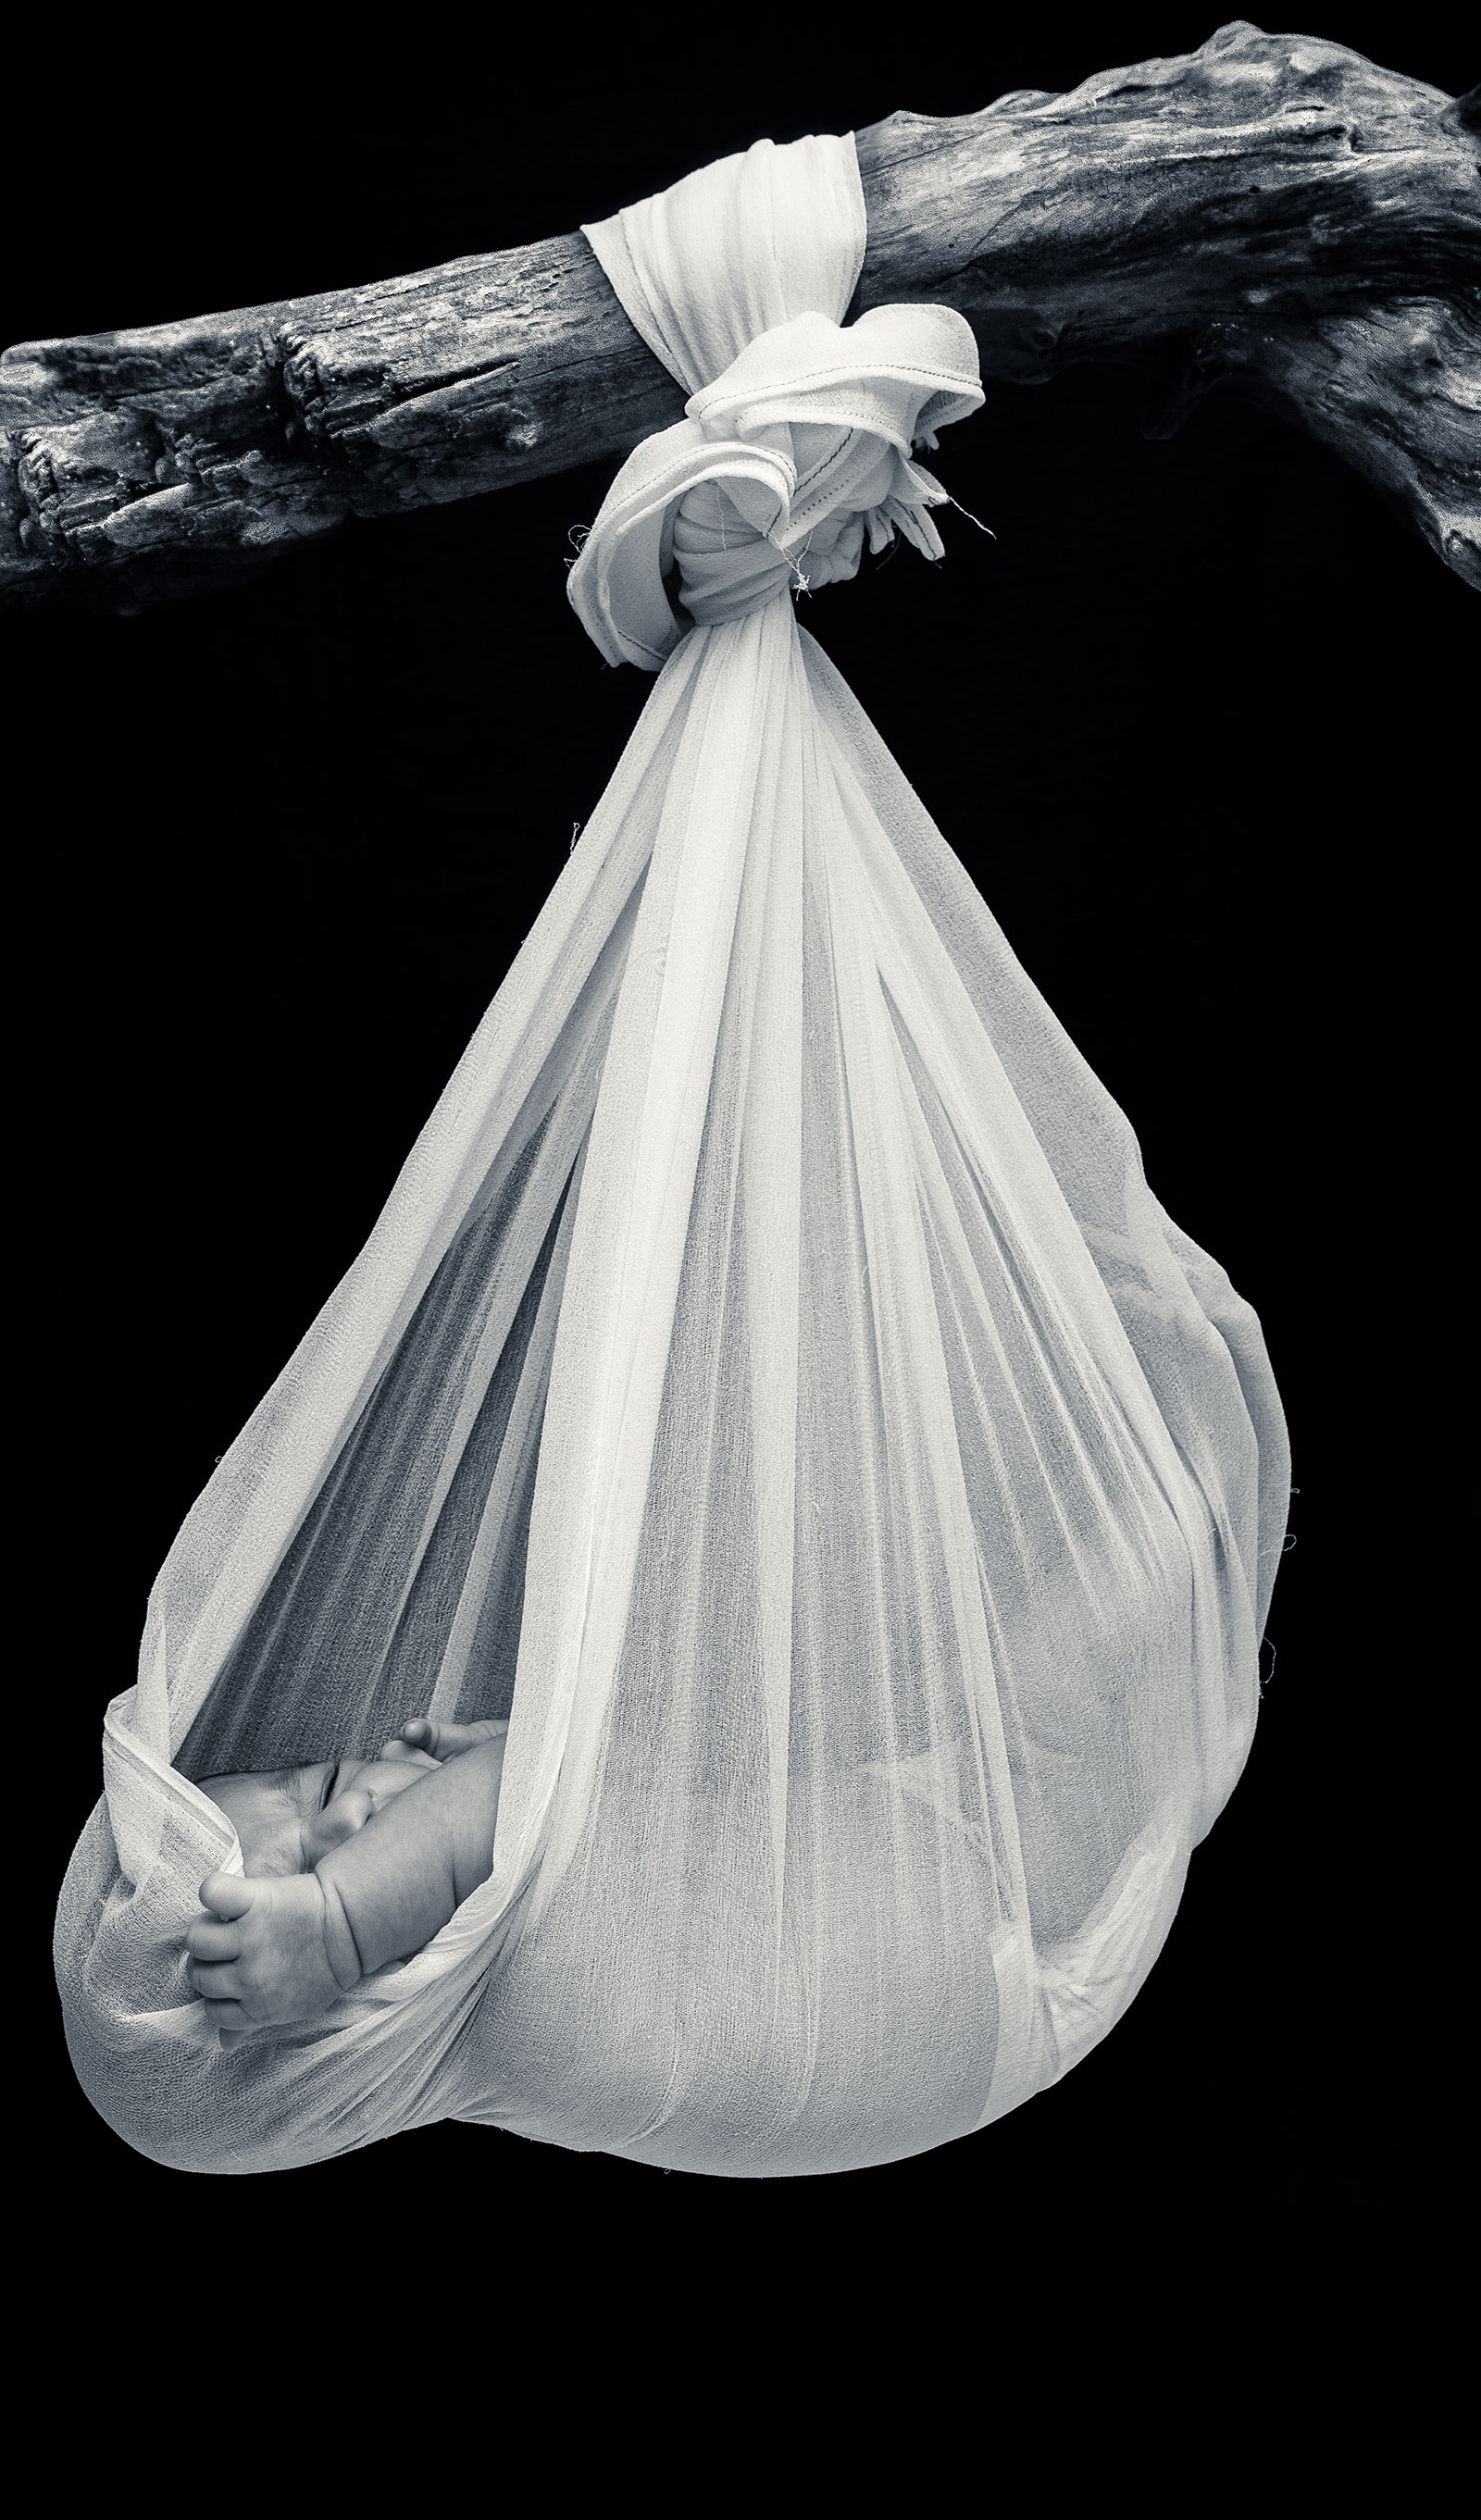 Black and White Shot of Hanging Newborn Baby in Sling from a branch